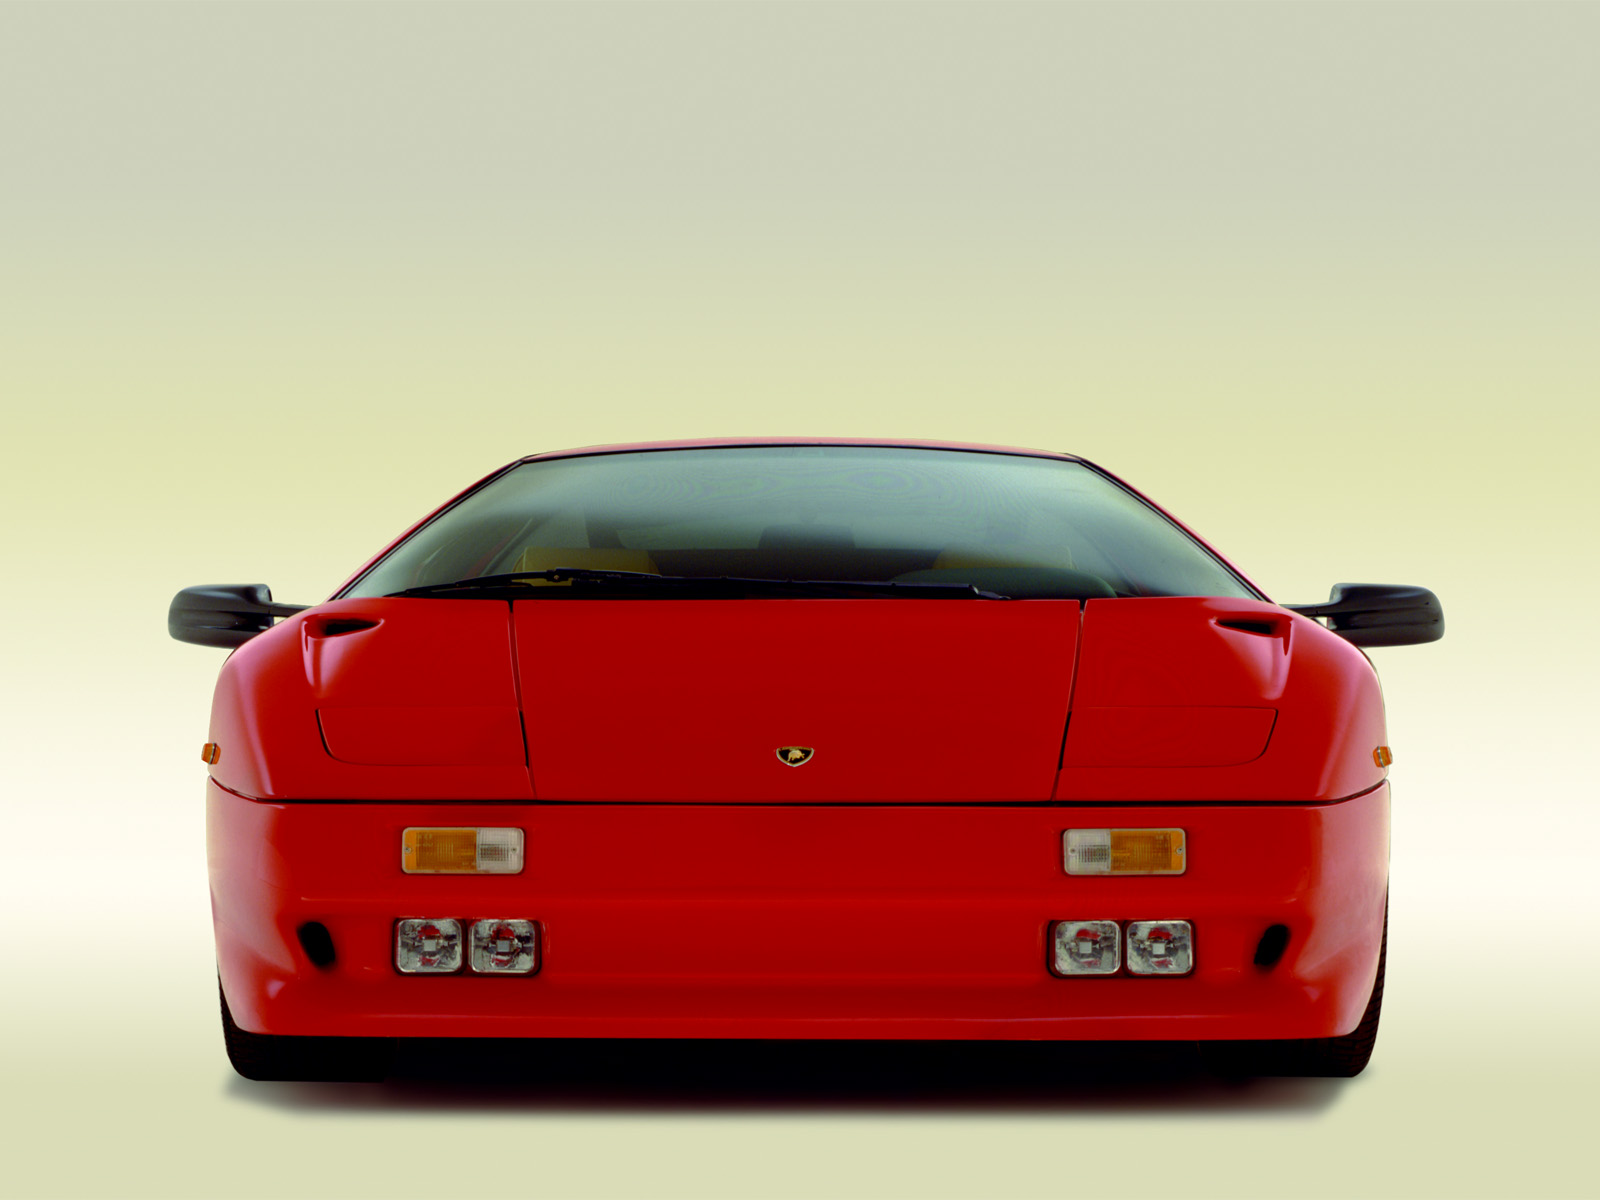 1990 lamborghini diablo lamborghini. Black Bedroom Furniture Sets. Home Design Ideas